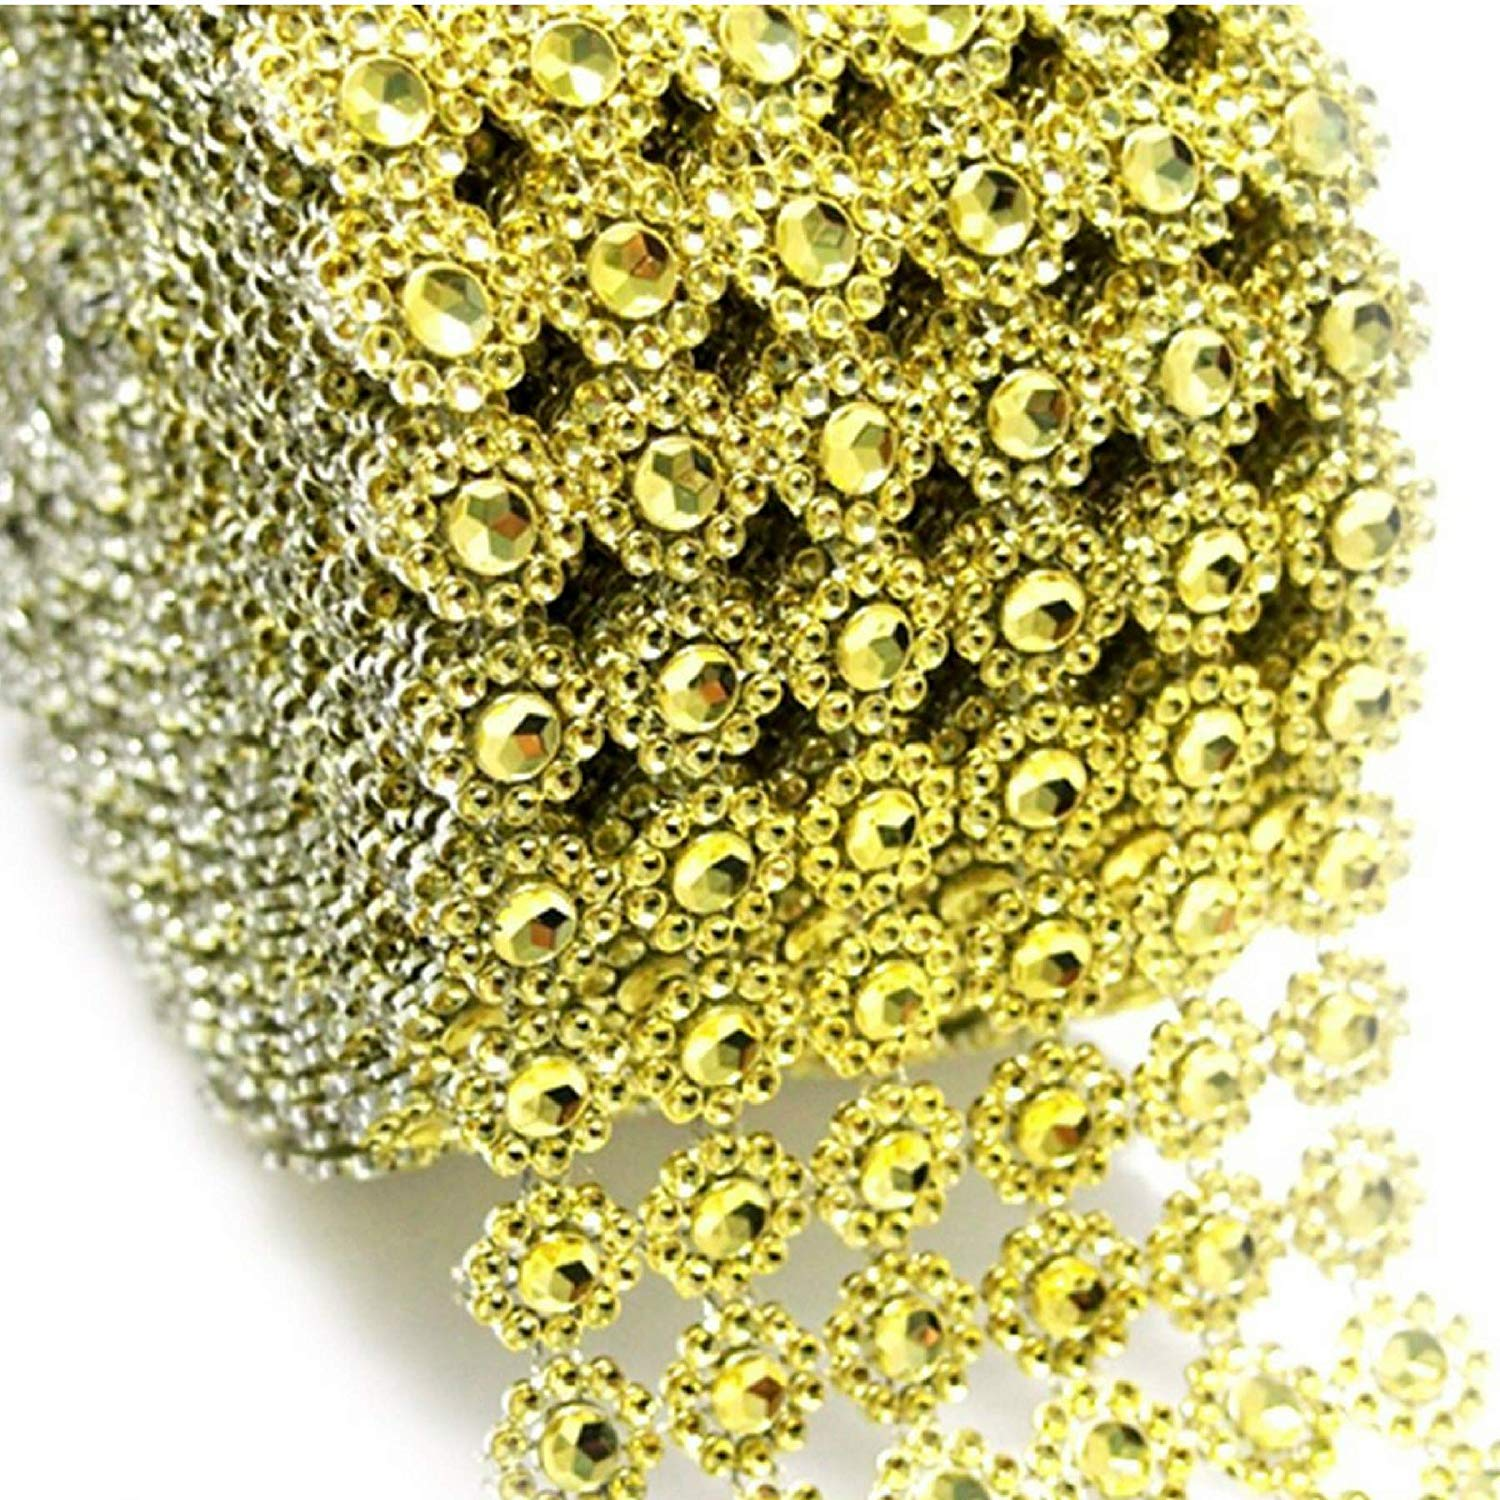 Gold, 30 Ft AkoaDa Silver Bling Diamond Wrap Ribbon for Event Decorations Bridal /& Party Decorations Acrylic Bling Rhinestone Roll Bling Rhinestone Diamond Ribbon Wedding Cake